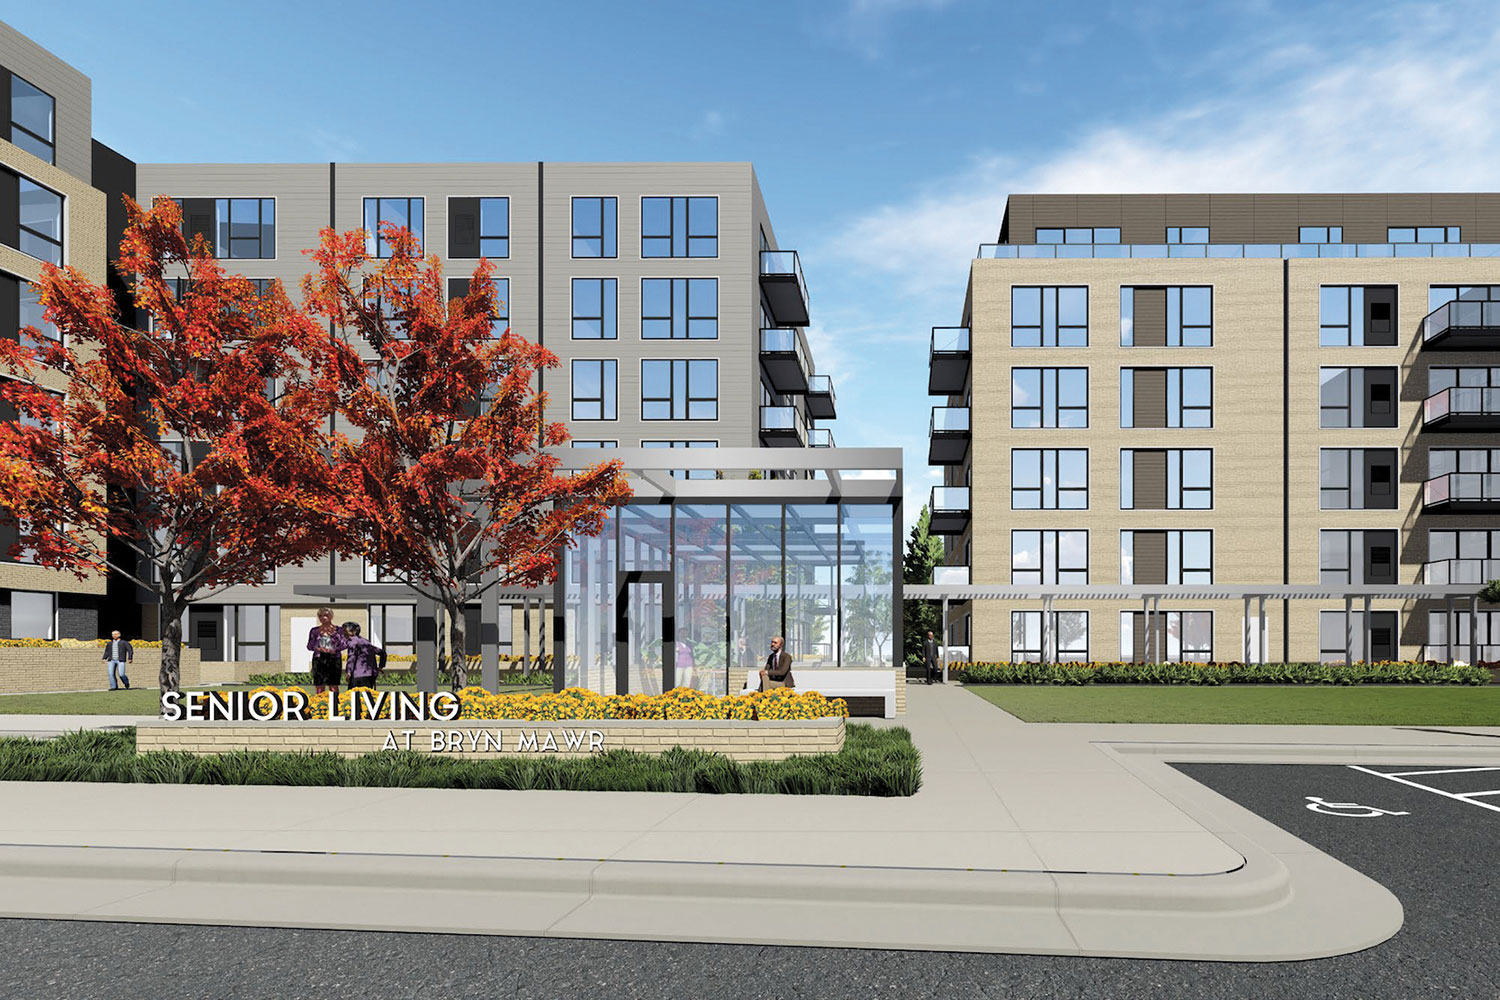 Lupe and Swervo Development's Bryn Mawr project is all for seniors